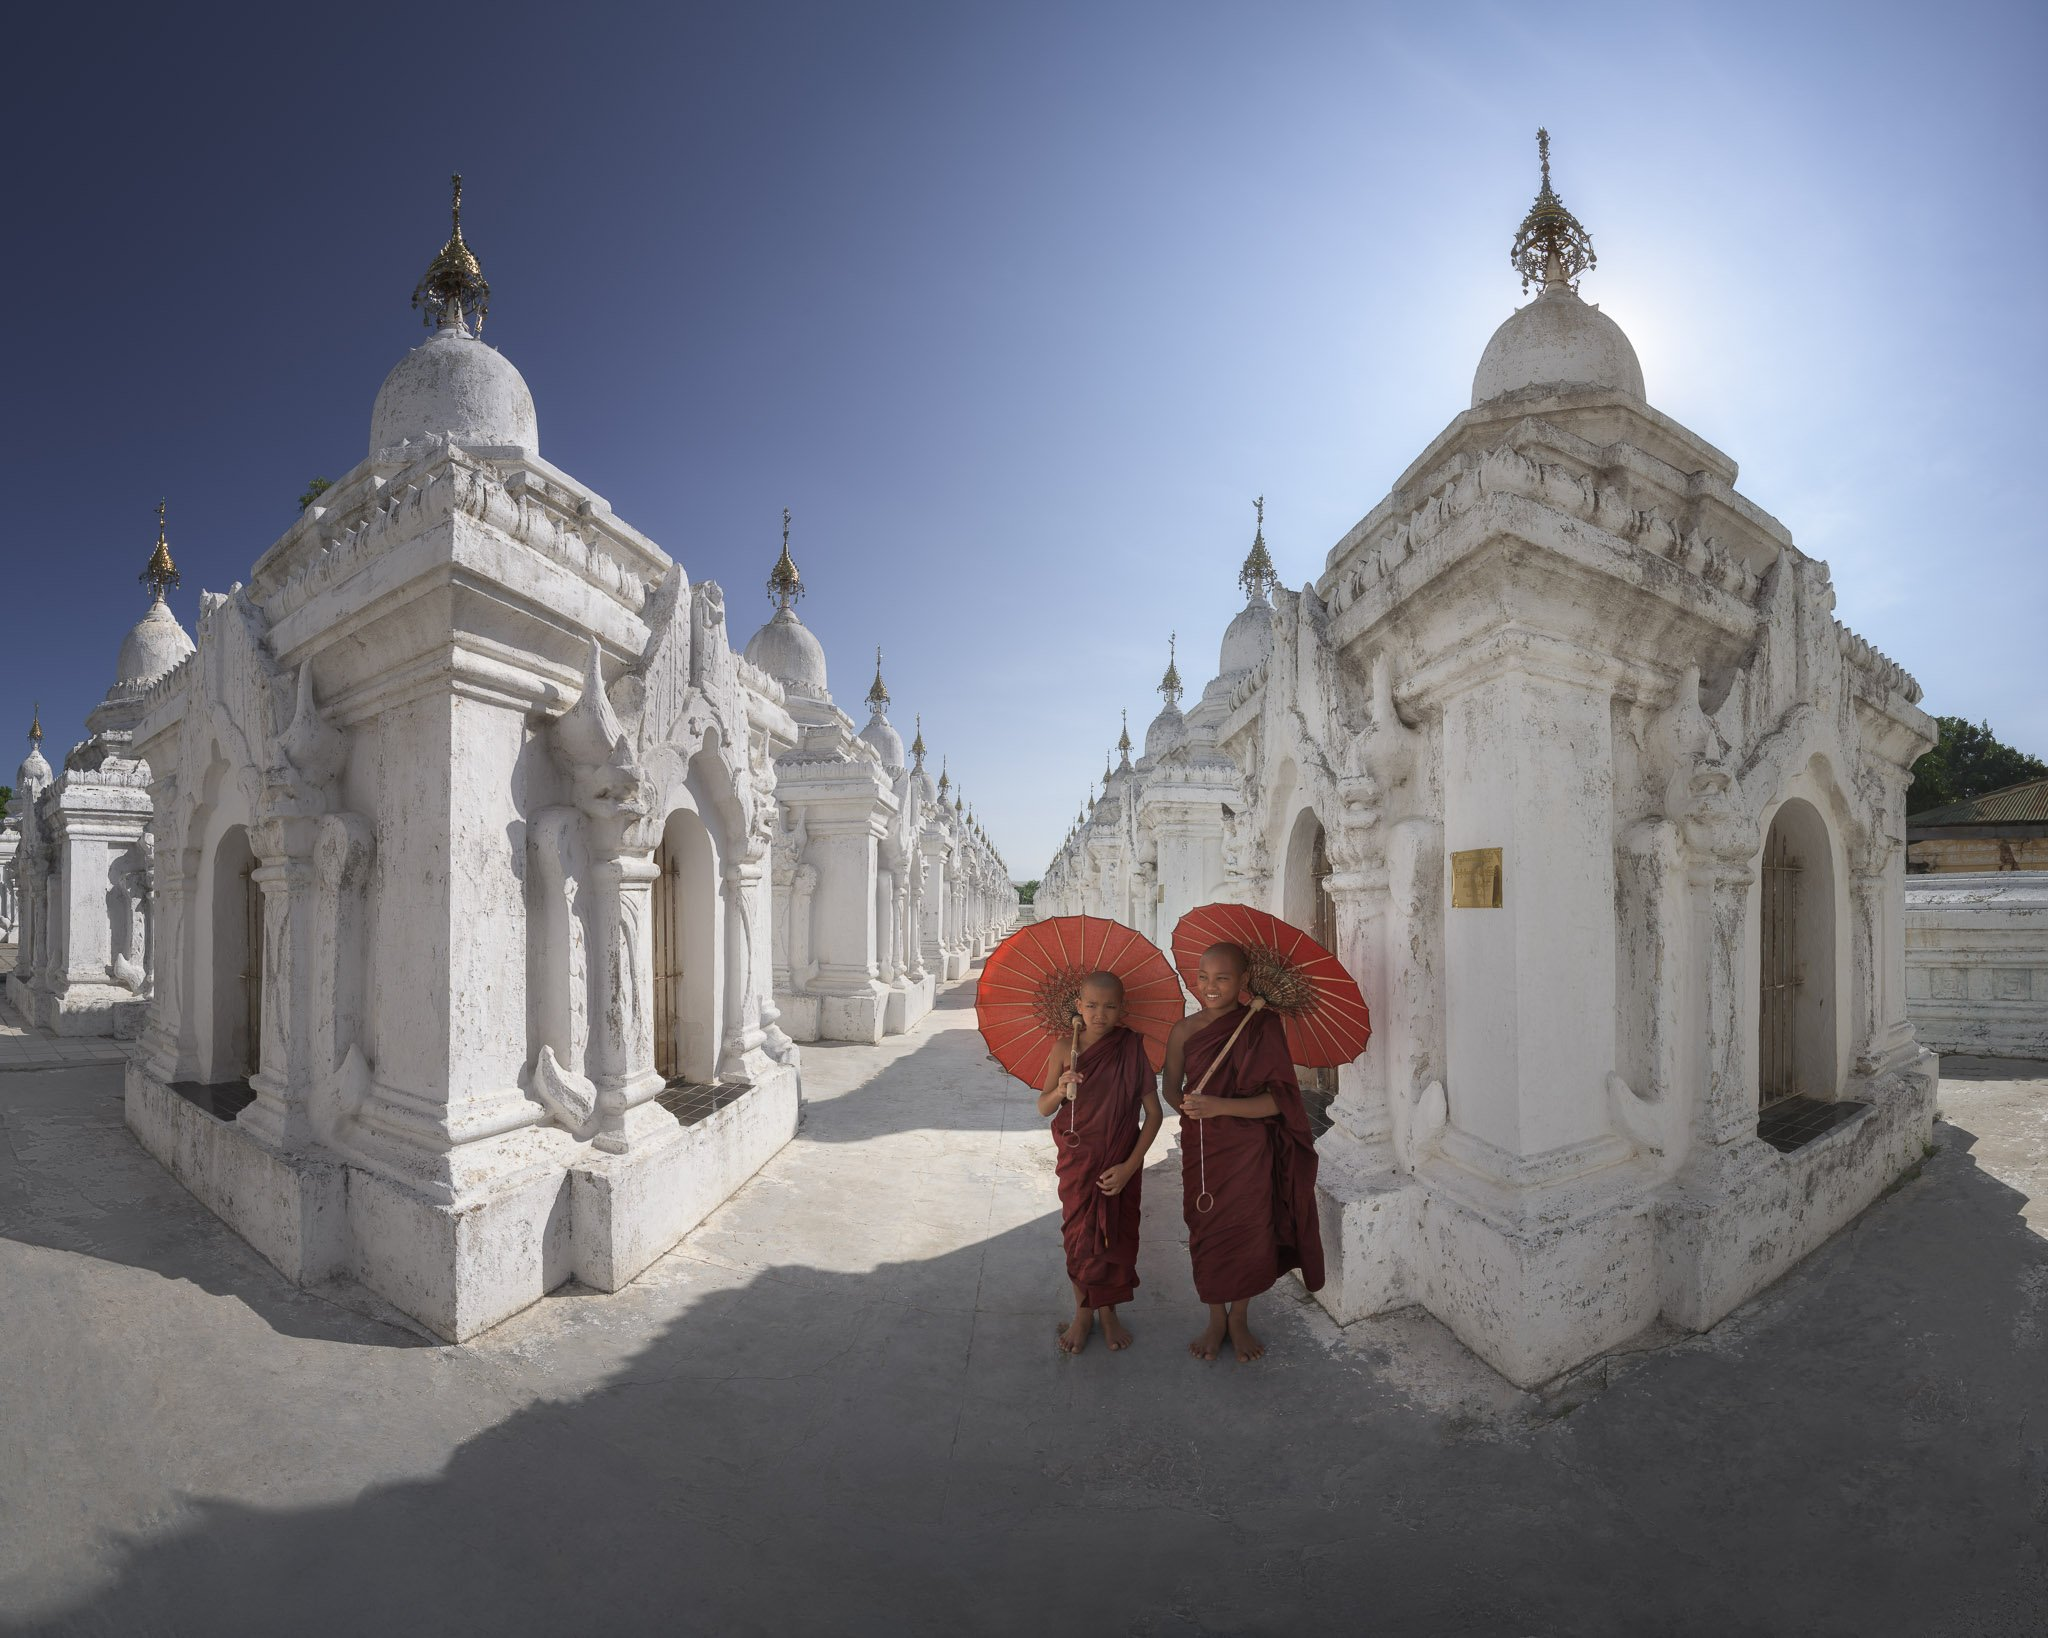 archaeological, architecture, asia, asian, attraction, blue, book, buddha, buddhism, buddhist, building, burma, burmese, complex, culture, dome, exterior, famous, heritage, historic, history, kuthodaw, landmark, largest, majestic, mandalay, monks, monumen, Omelyanchuk Andrey